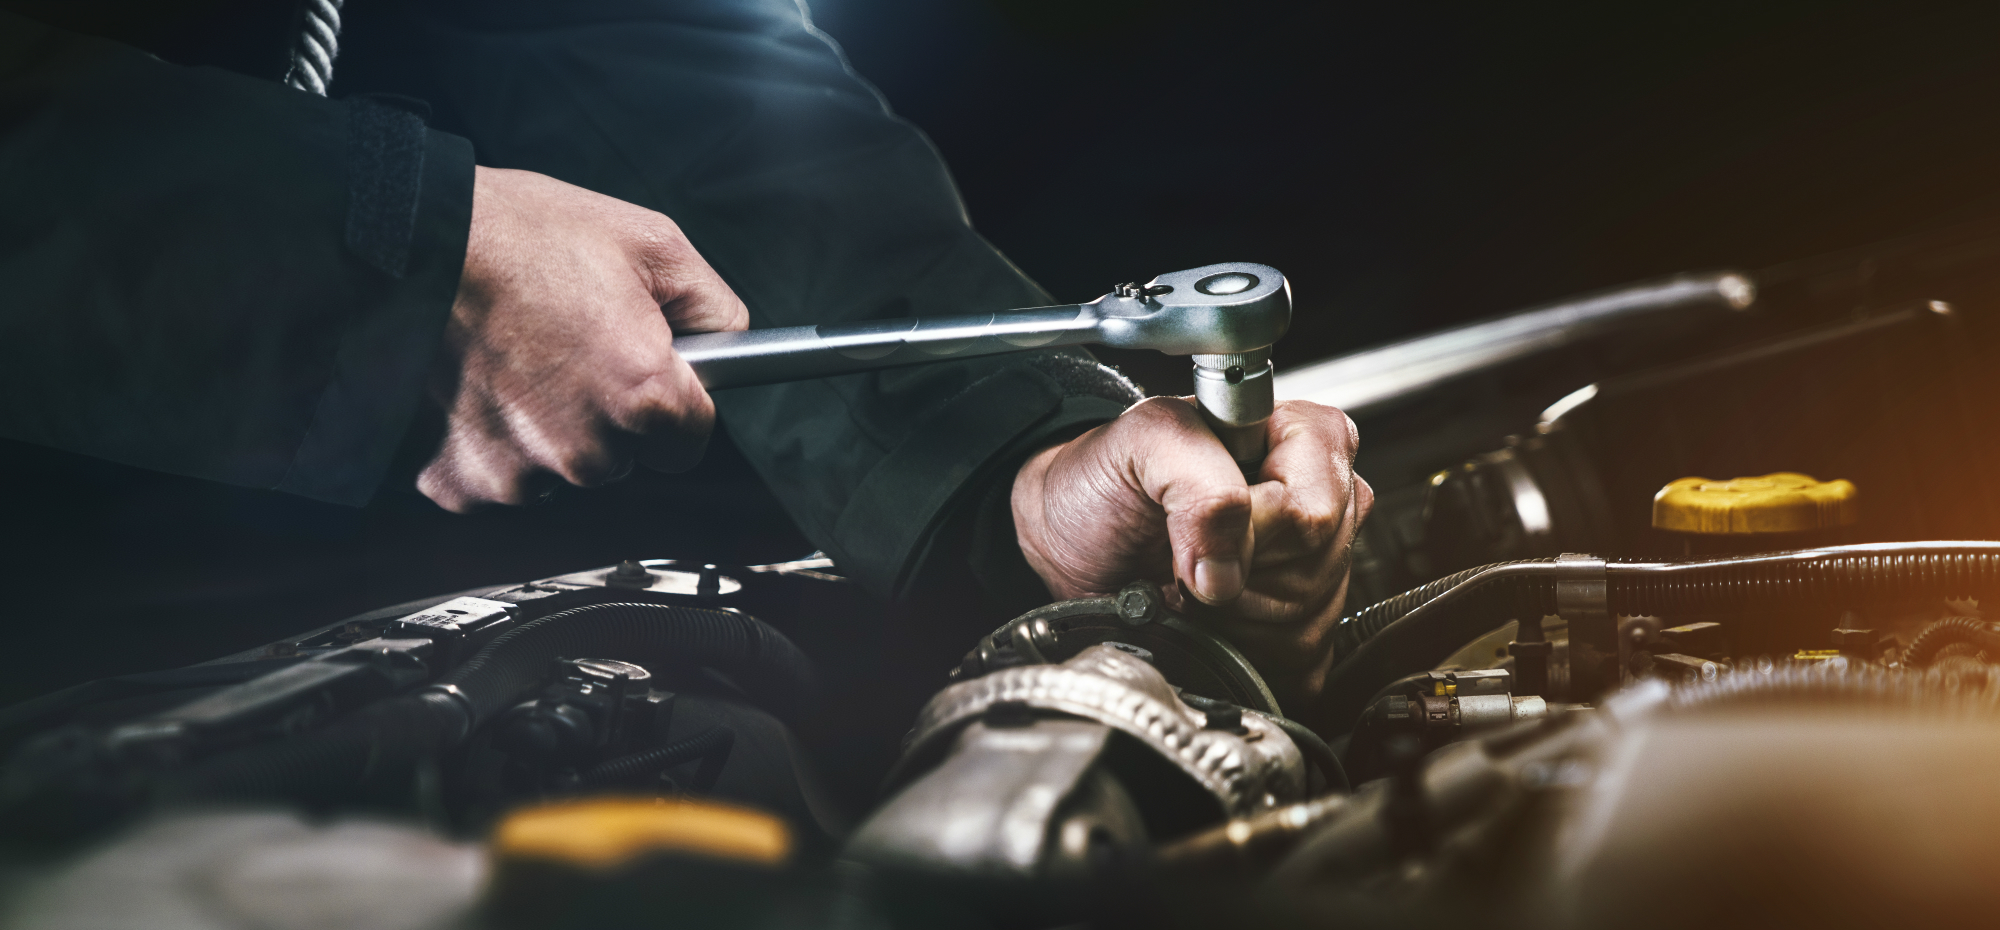 How to Find an Honest Mechanic